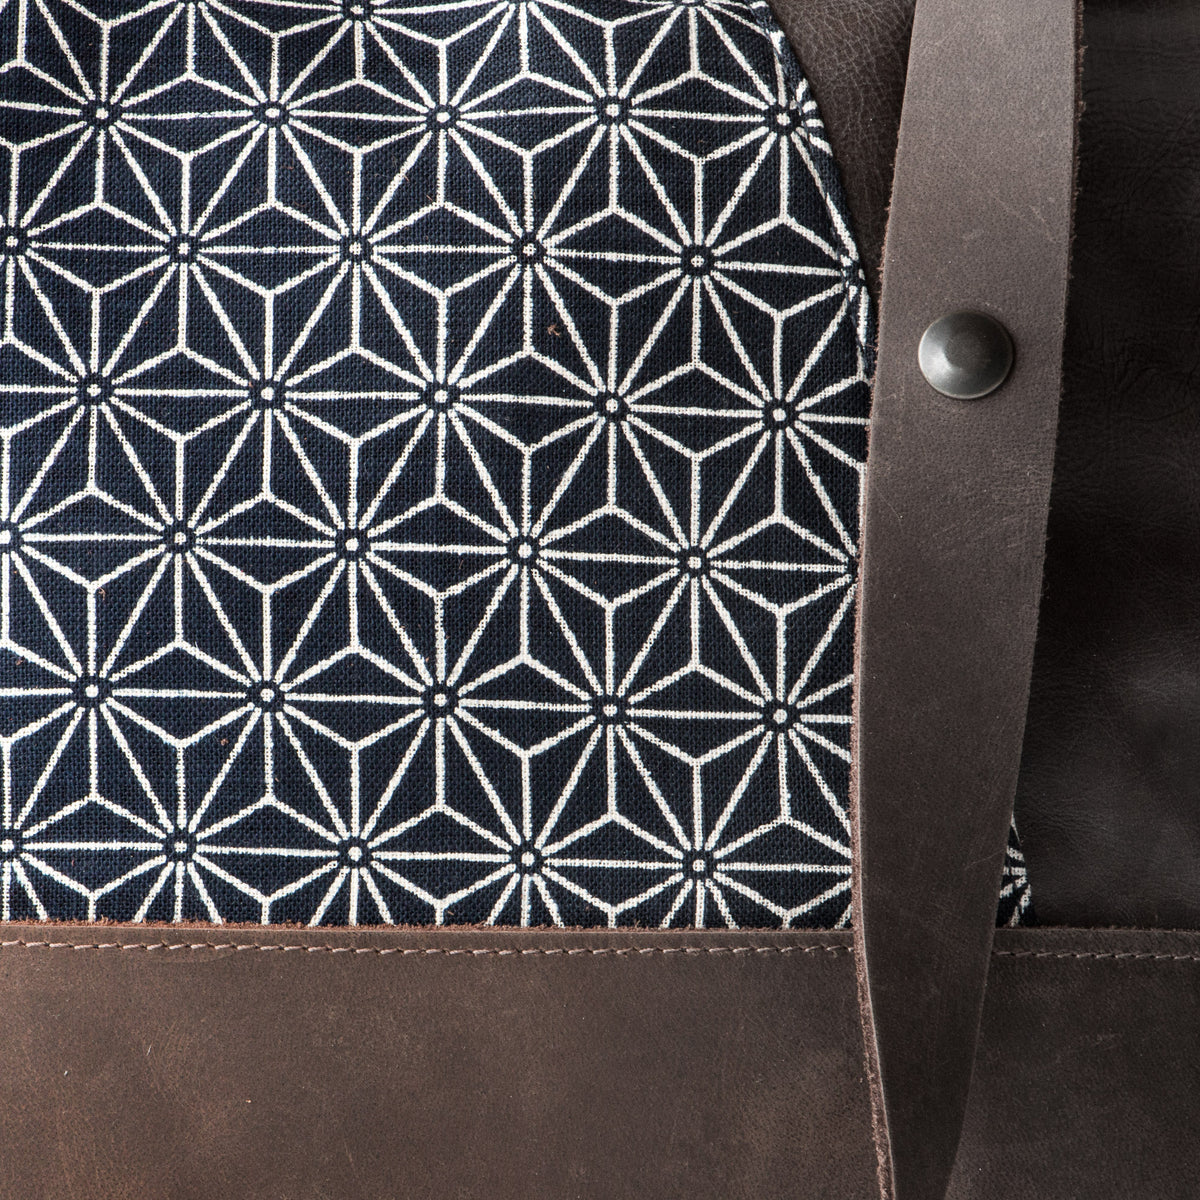 Fabric Detail - Yupik - Adjustable Leather Shoulder Bag with Japanese Fabric - Sold by Chic & Basta